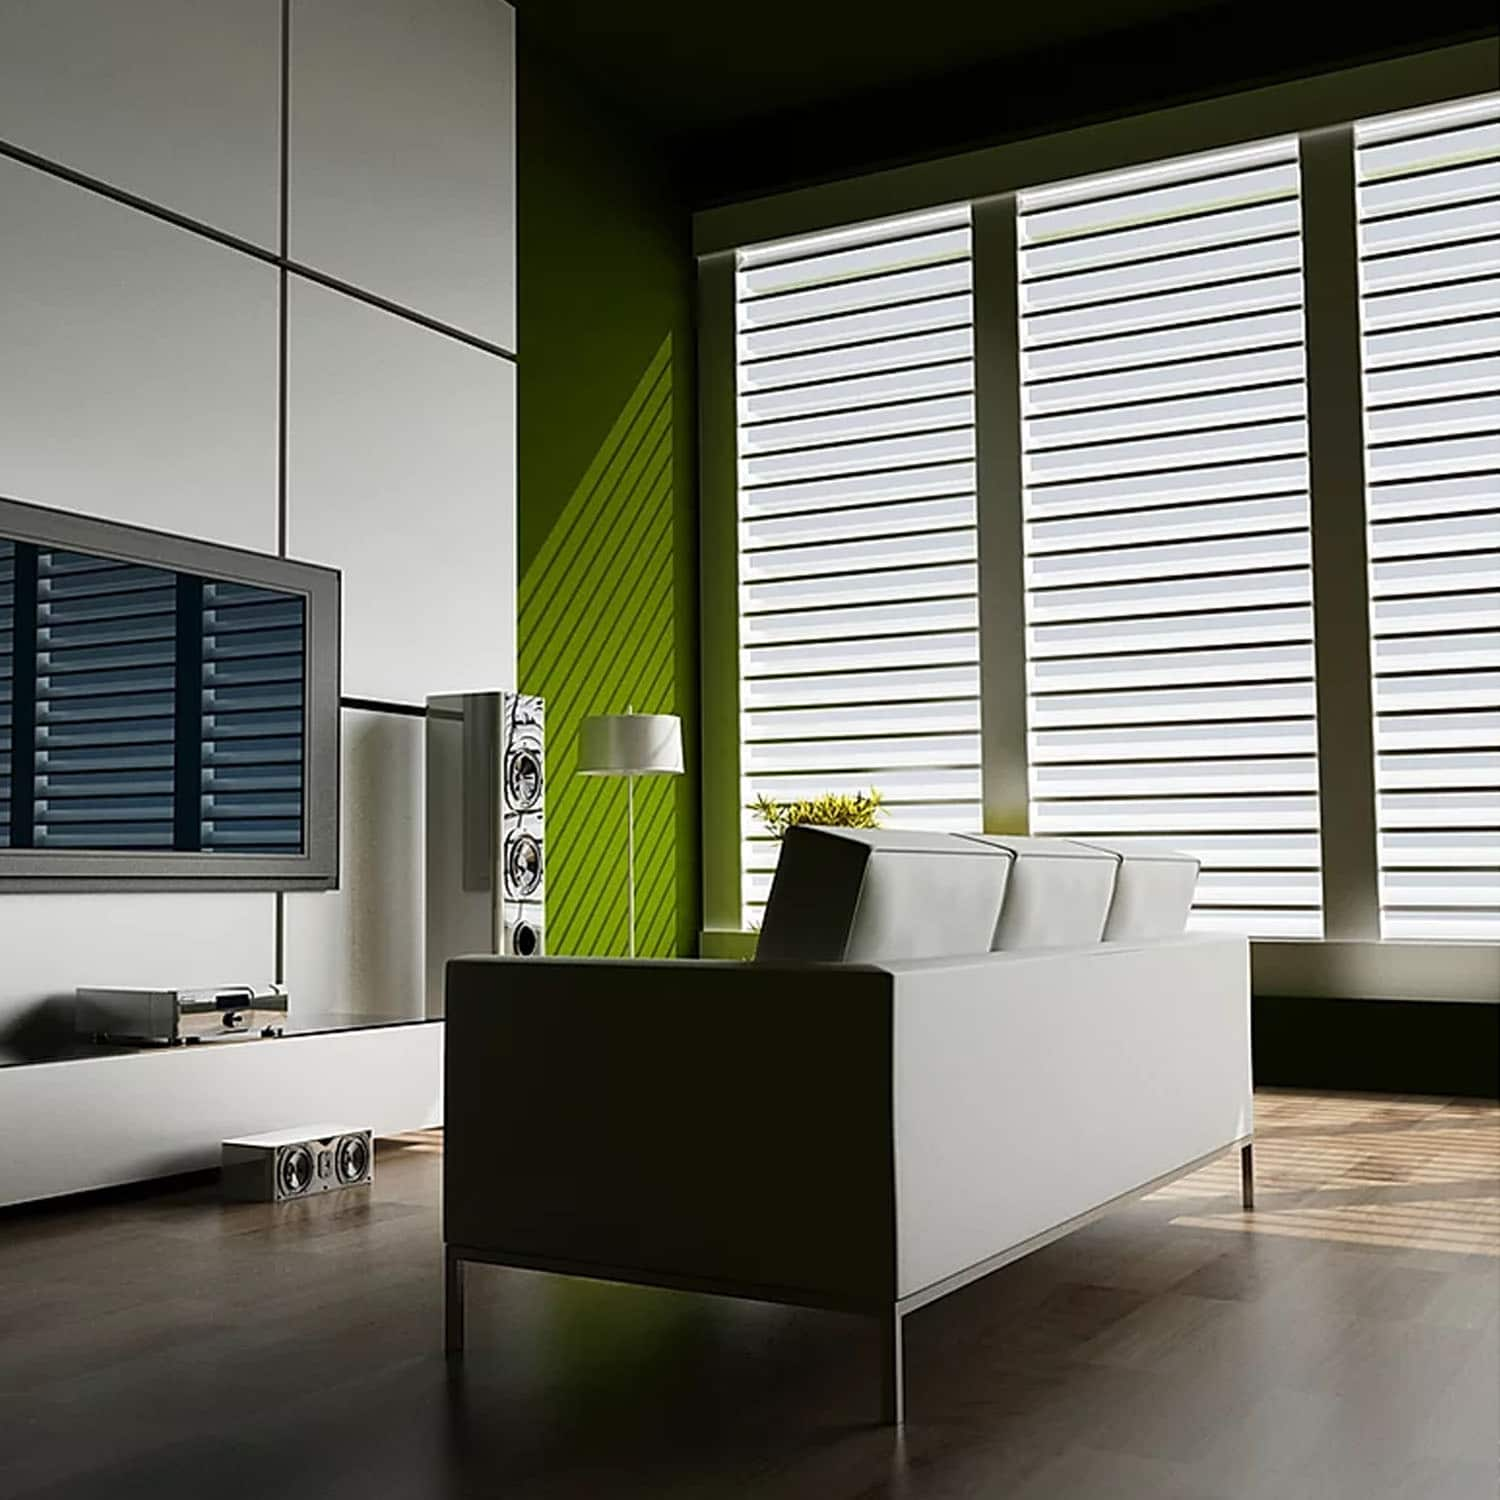 A Beautiful Artistic Appearance With Blinds And Curtains: Here's How!